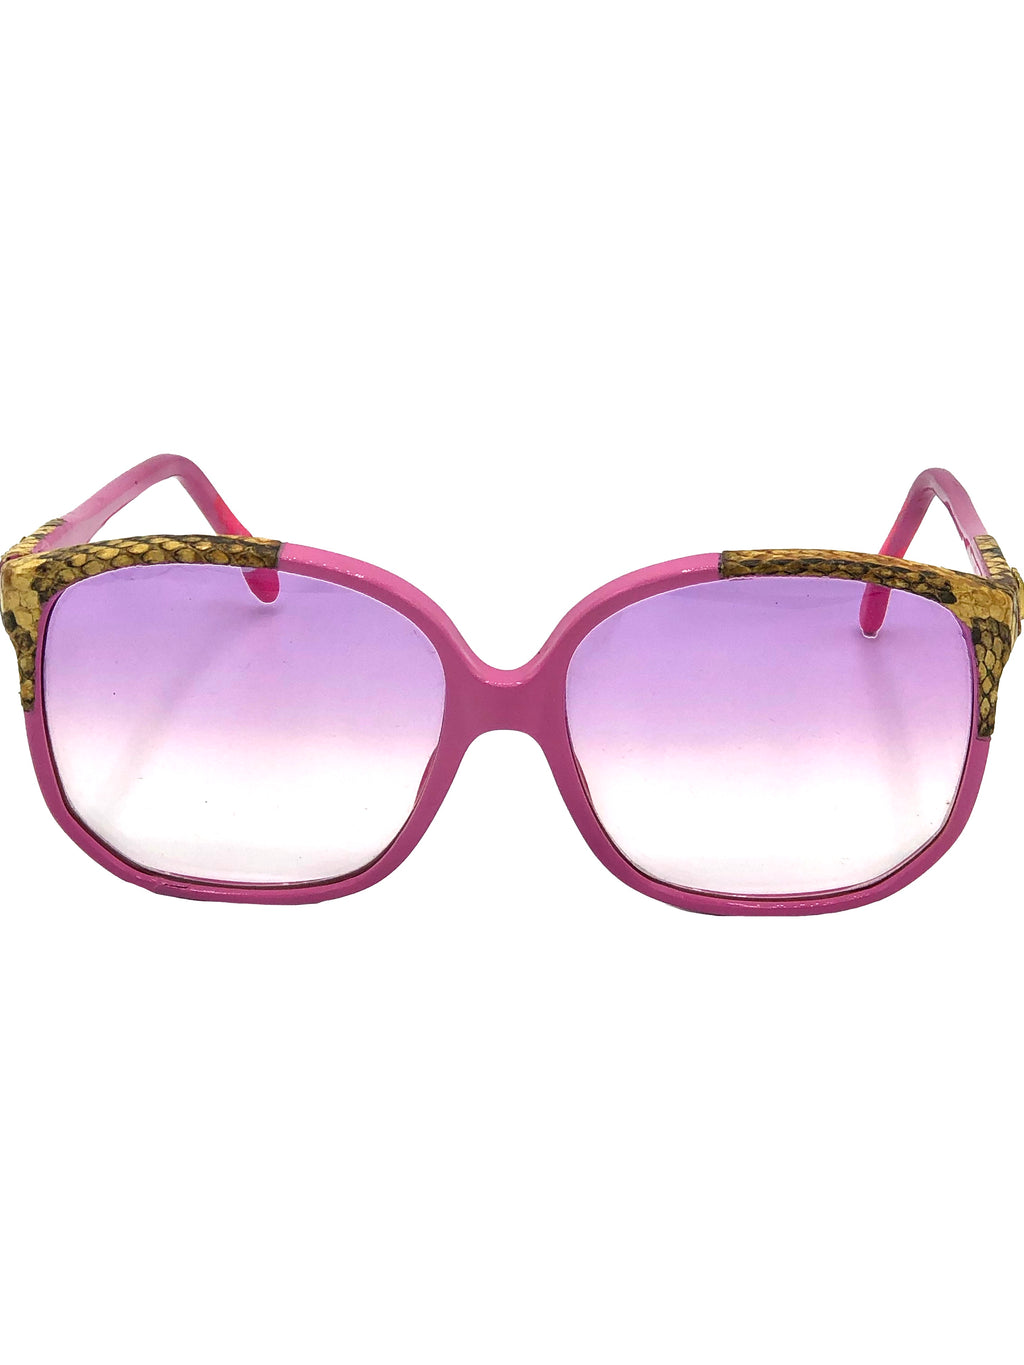 Emmanuelle Khanh 80s Pink Sunglasses with Snake Trim FRONT 1 of 4